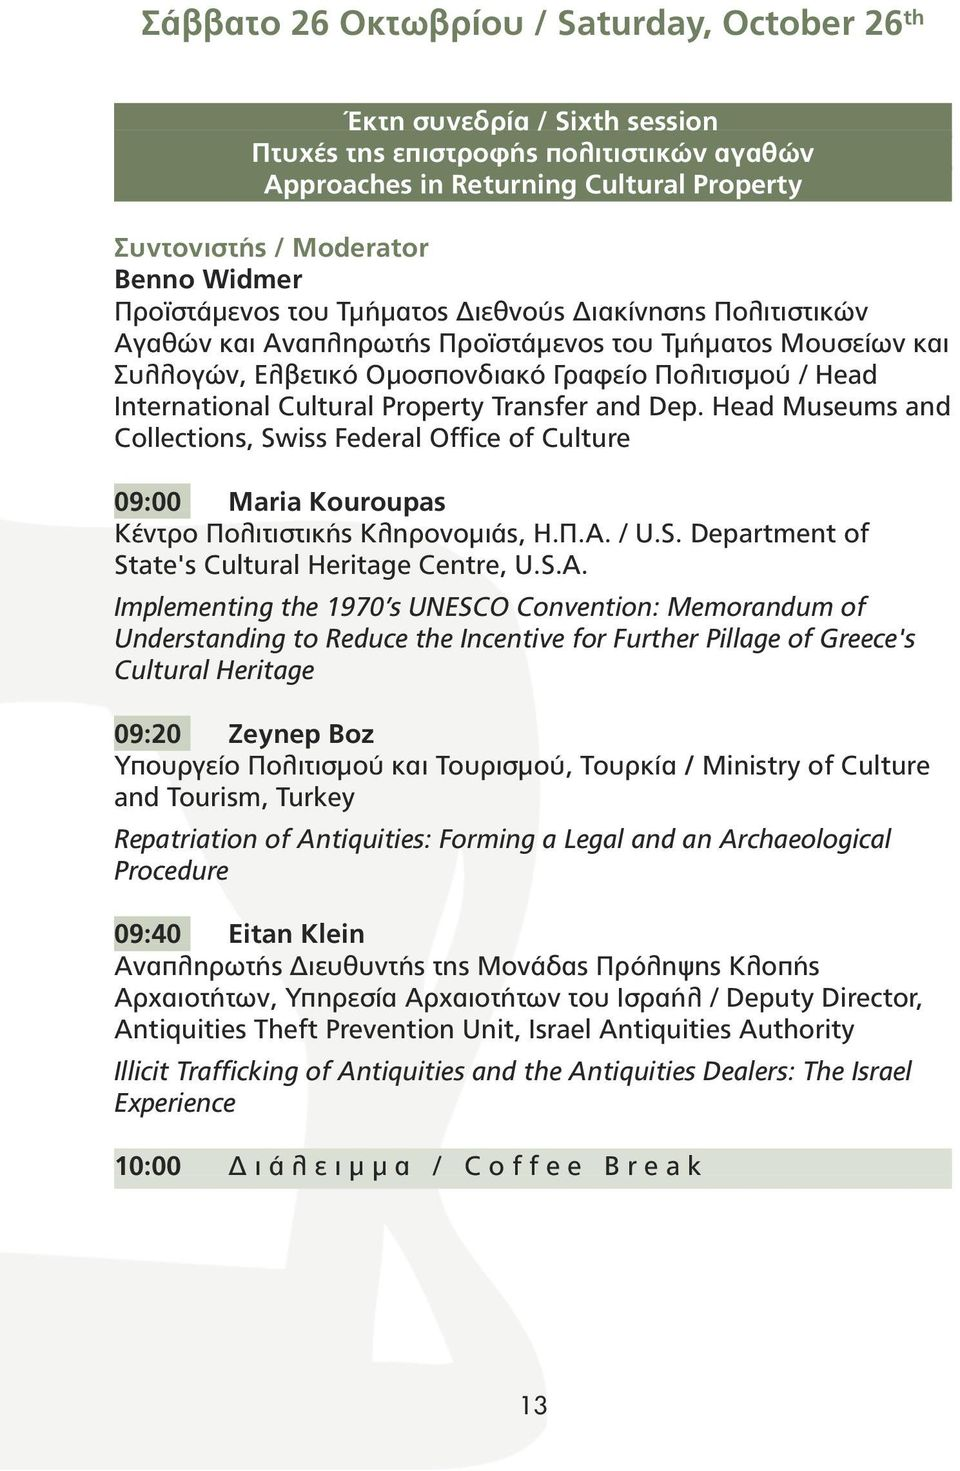 Property Transfer and Dep. Head Museums and Collections, Swiss Federal Office of Culture 09:00 Maria Kouroupas Κέντρο Πολιτιστικής Κληρονοµιάς, Η.Π.Α. / U.S. Department of State's Cultural Heritage Centre, U.